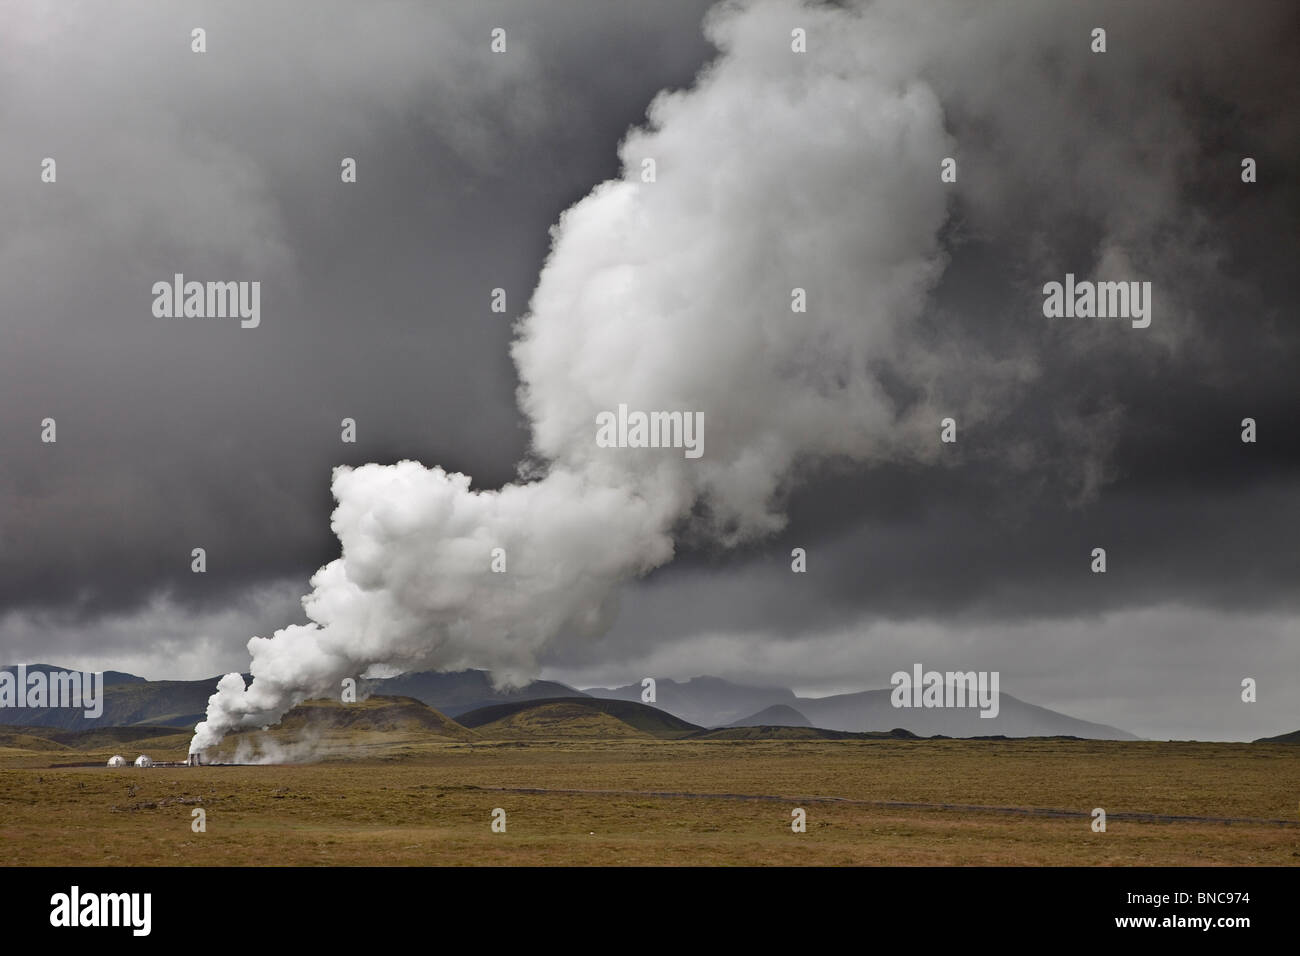 Geothermal hot springs steaming, South Coast, Iceland Stock Foto